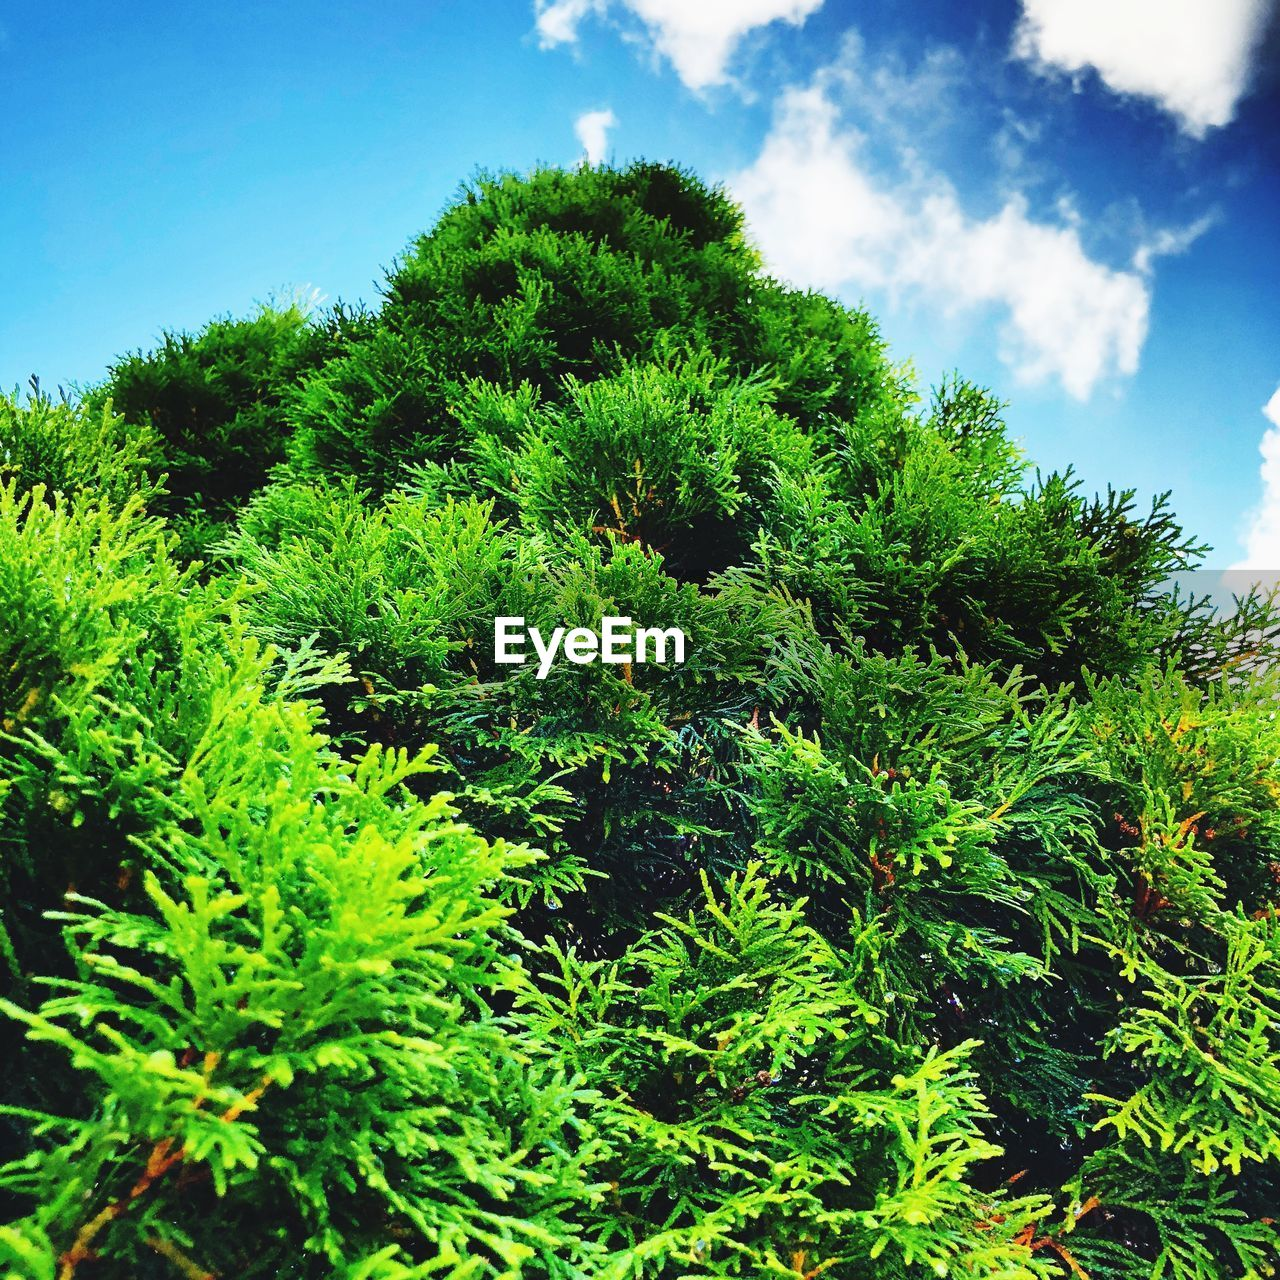 plant, growth, tree, green color, sky, beauty in nature, nature, day, tranquility, no people, cloud - sky, low angle view, outdoors, tranquil scene, foliage, blue, leaf, plant part, lush foliage, scenics - nature